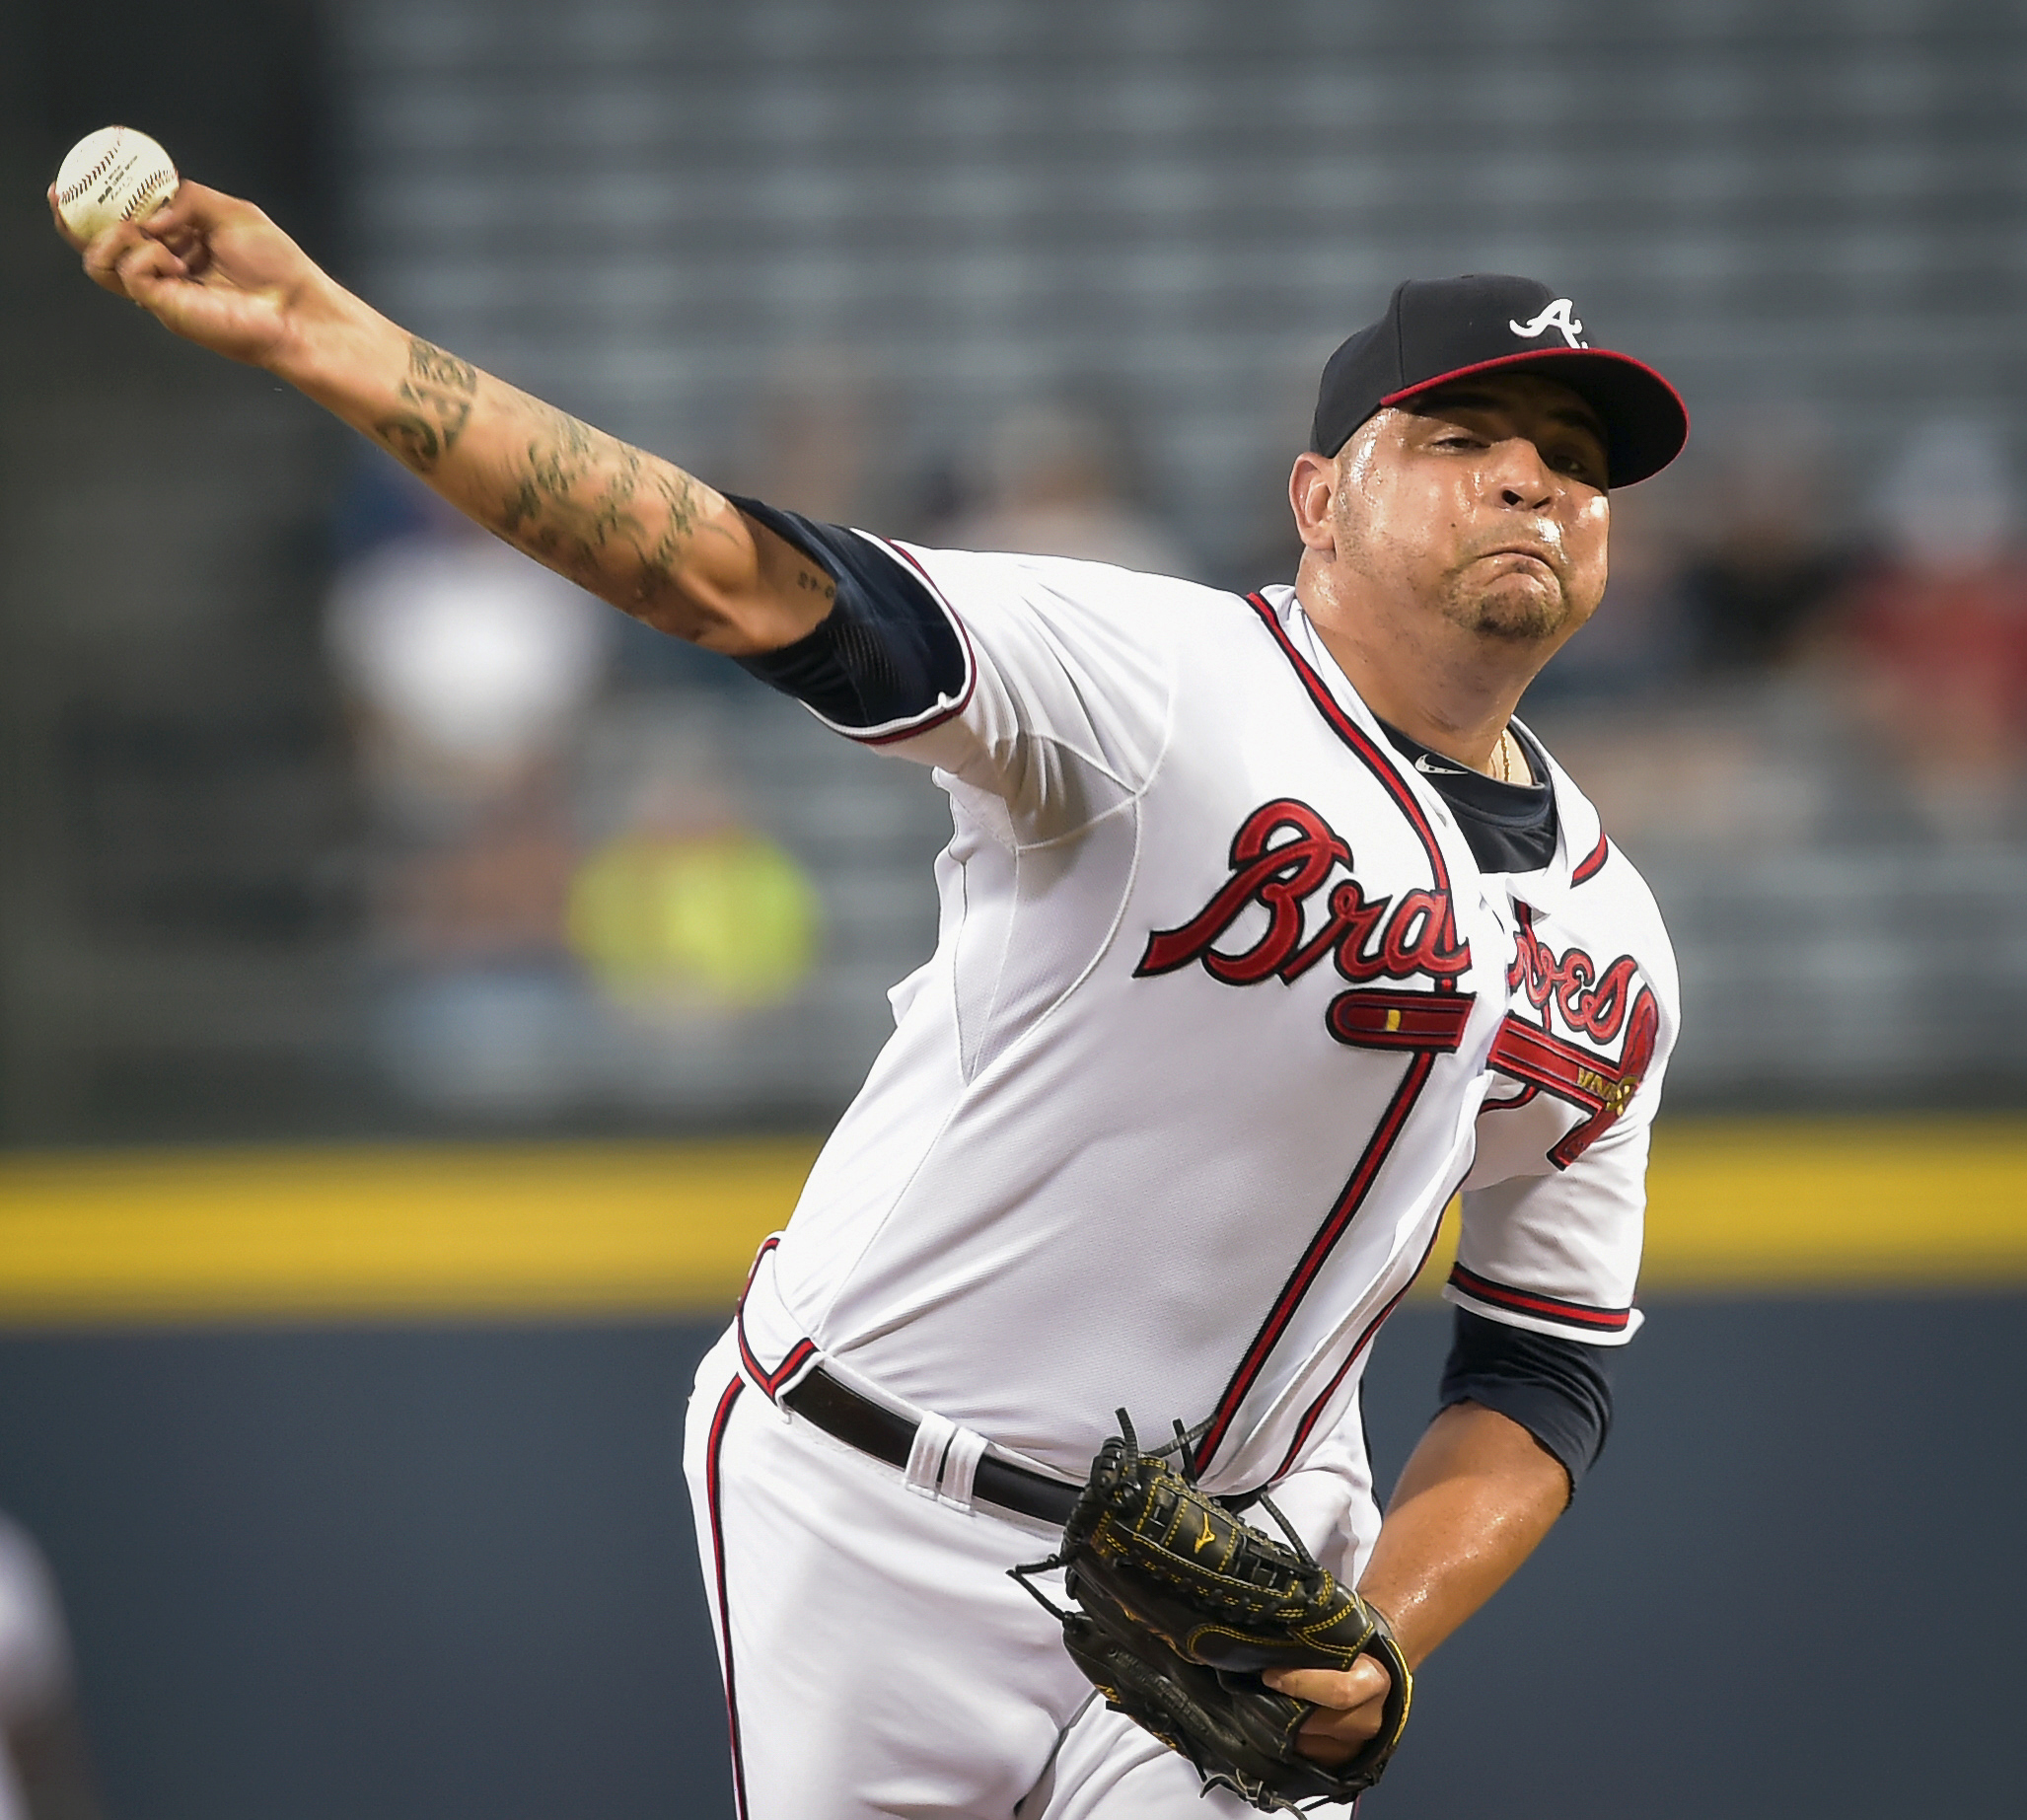 Atlanta Braves starting pitcher Williams Perez works in the first inning of a baseball game against the Washington Nationals, Wednesday, Sept. 30, 2015, in Atlanta. (AP Photo/Jon Barash)